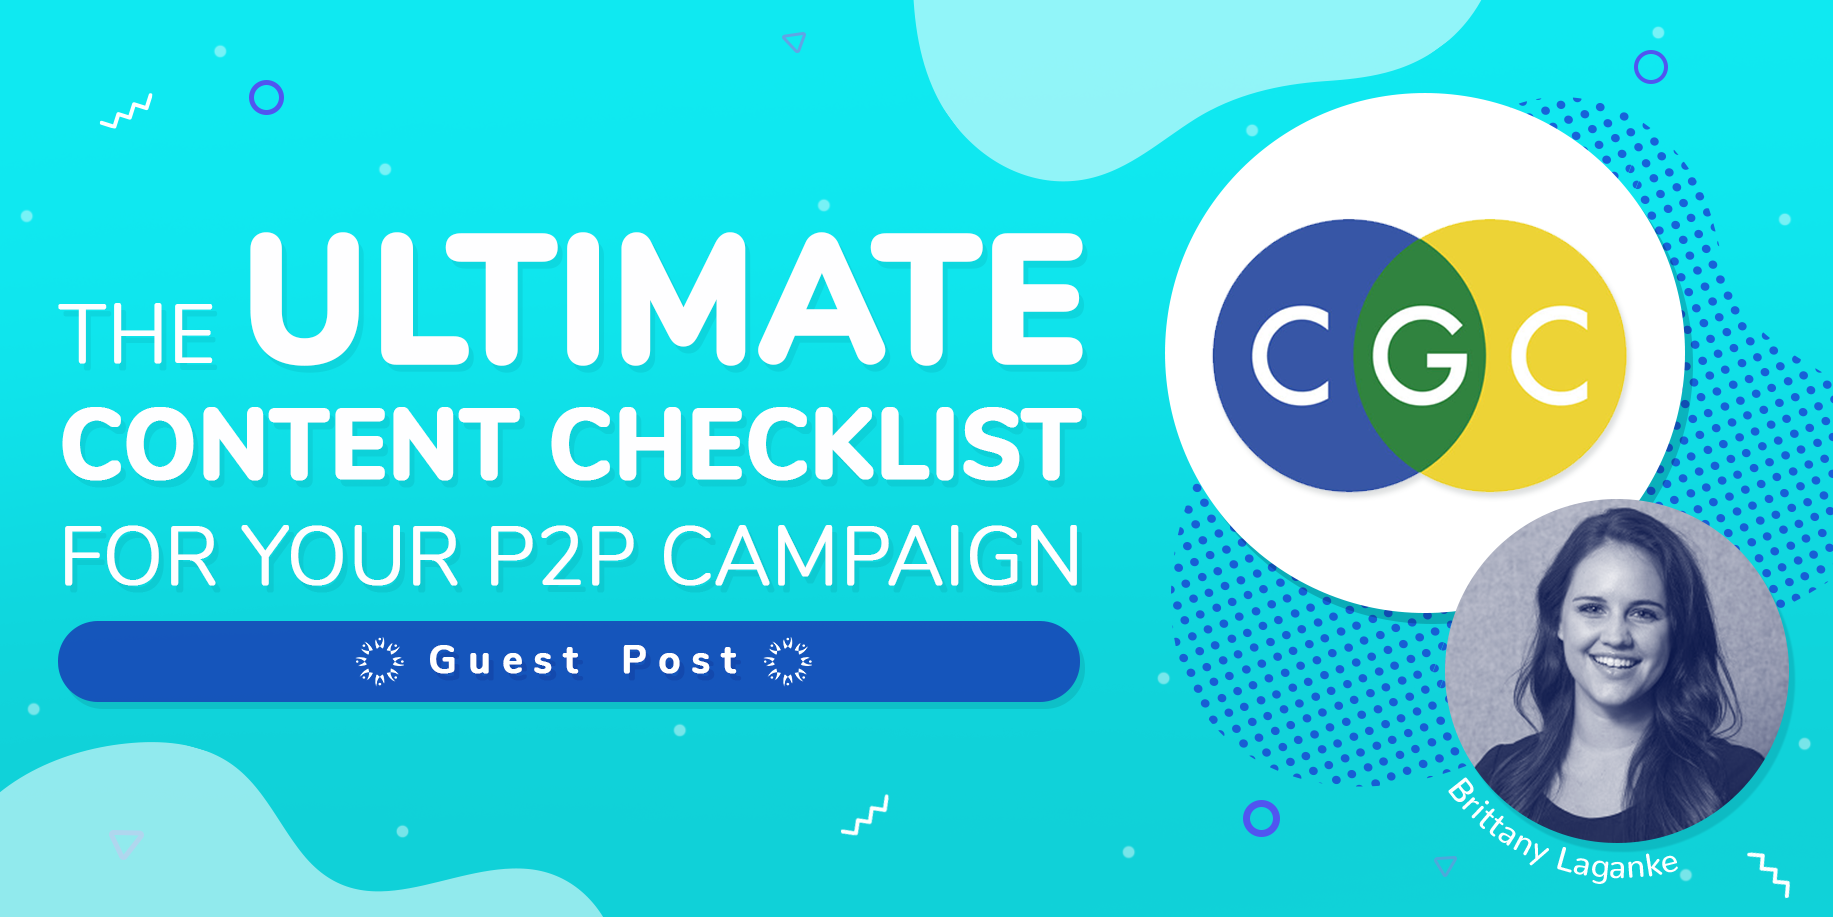 The Ultimate Content Checklist for Your P2P Campaign